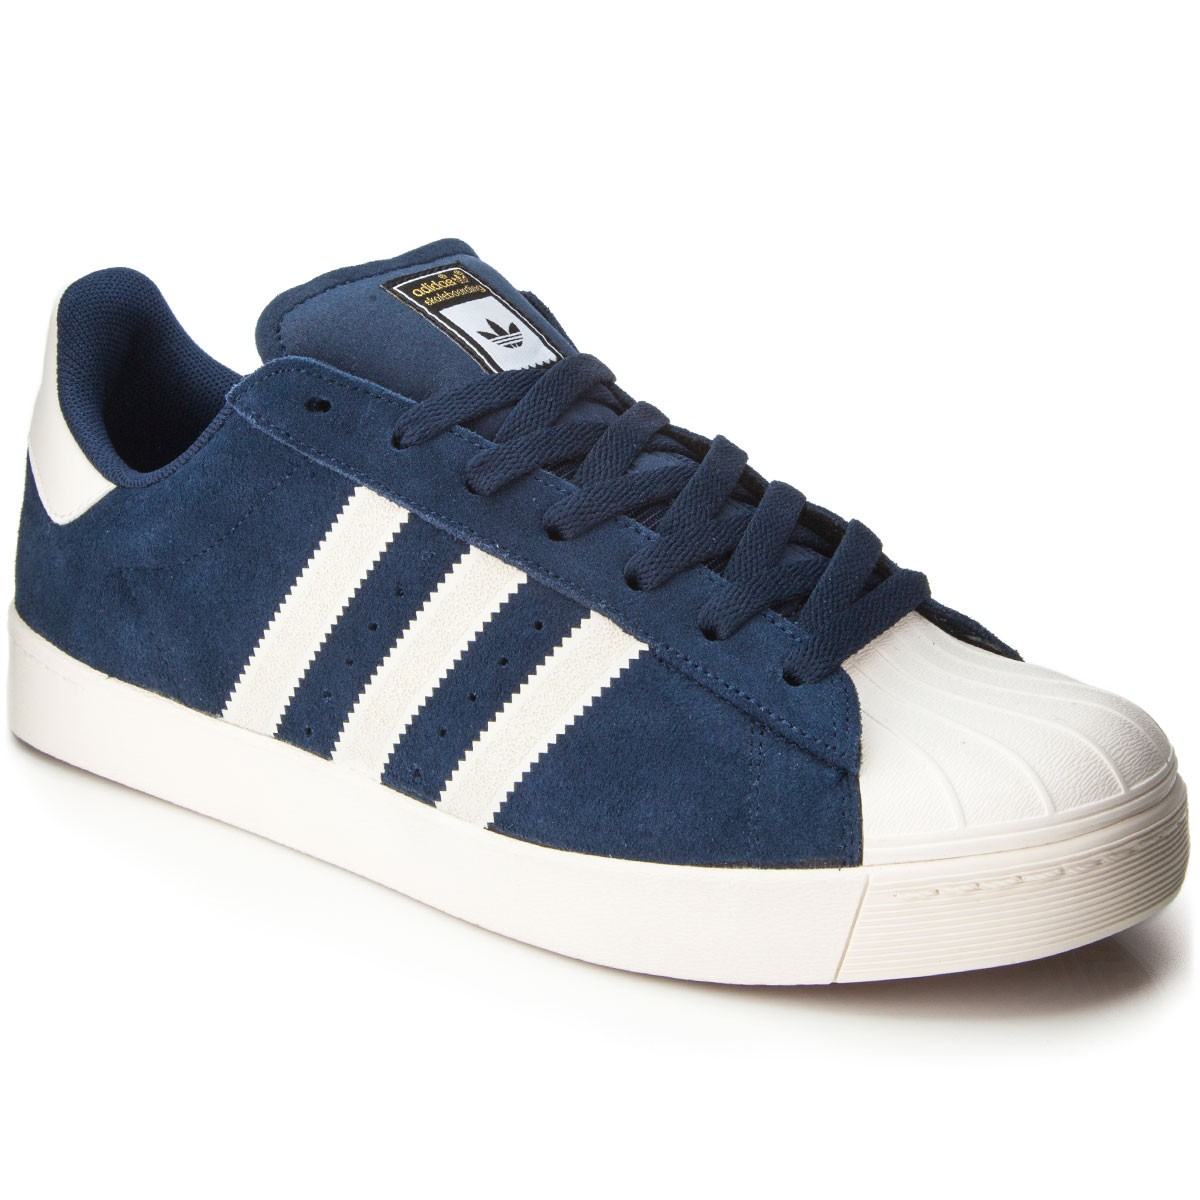 buy popular 93e4d b8208 Cheap Superstar Shoes, Buy Adidas Superstar Shoes Online ...